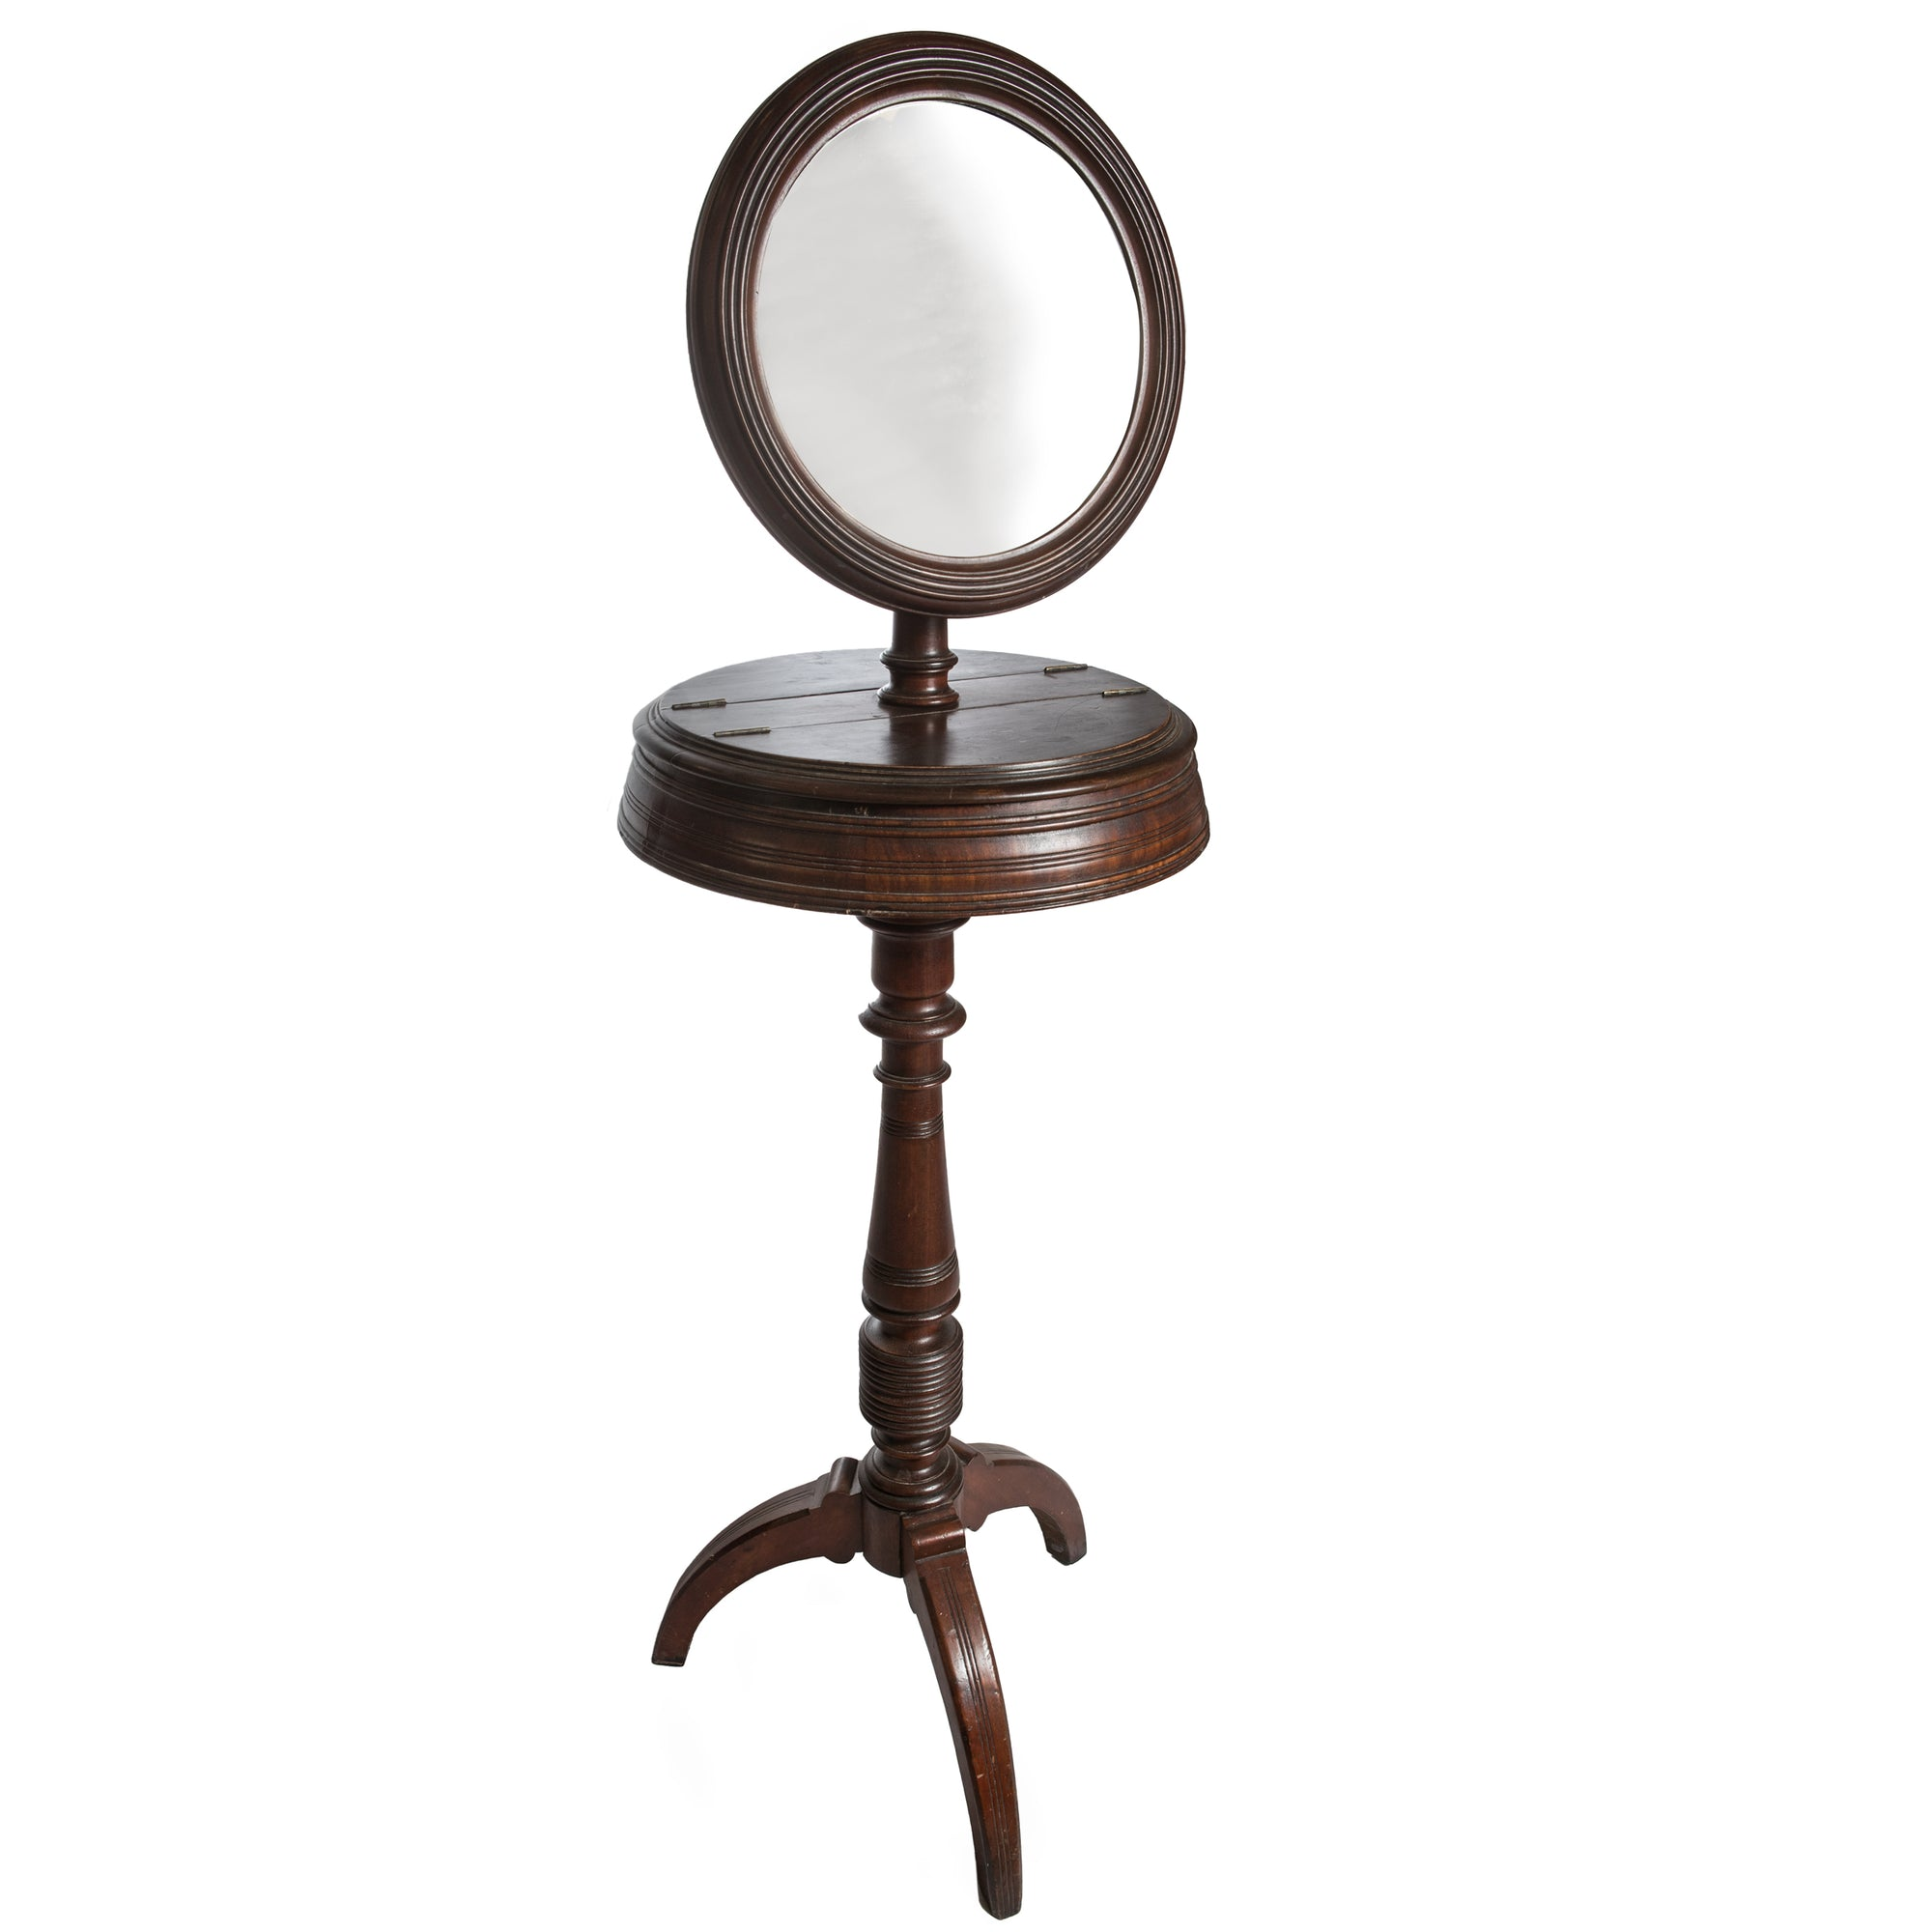 Antique Victorian Mahogany Shaving Stand - The Architectural Forum